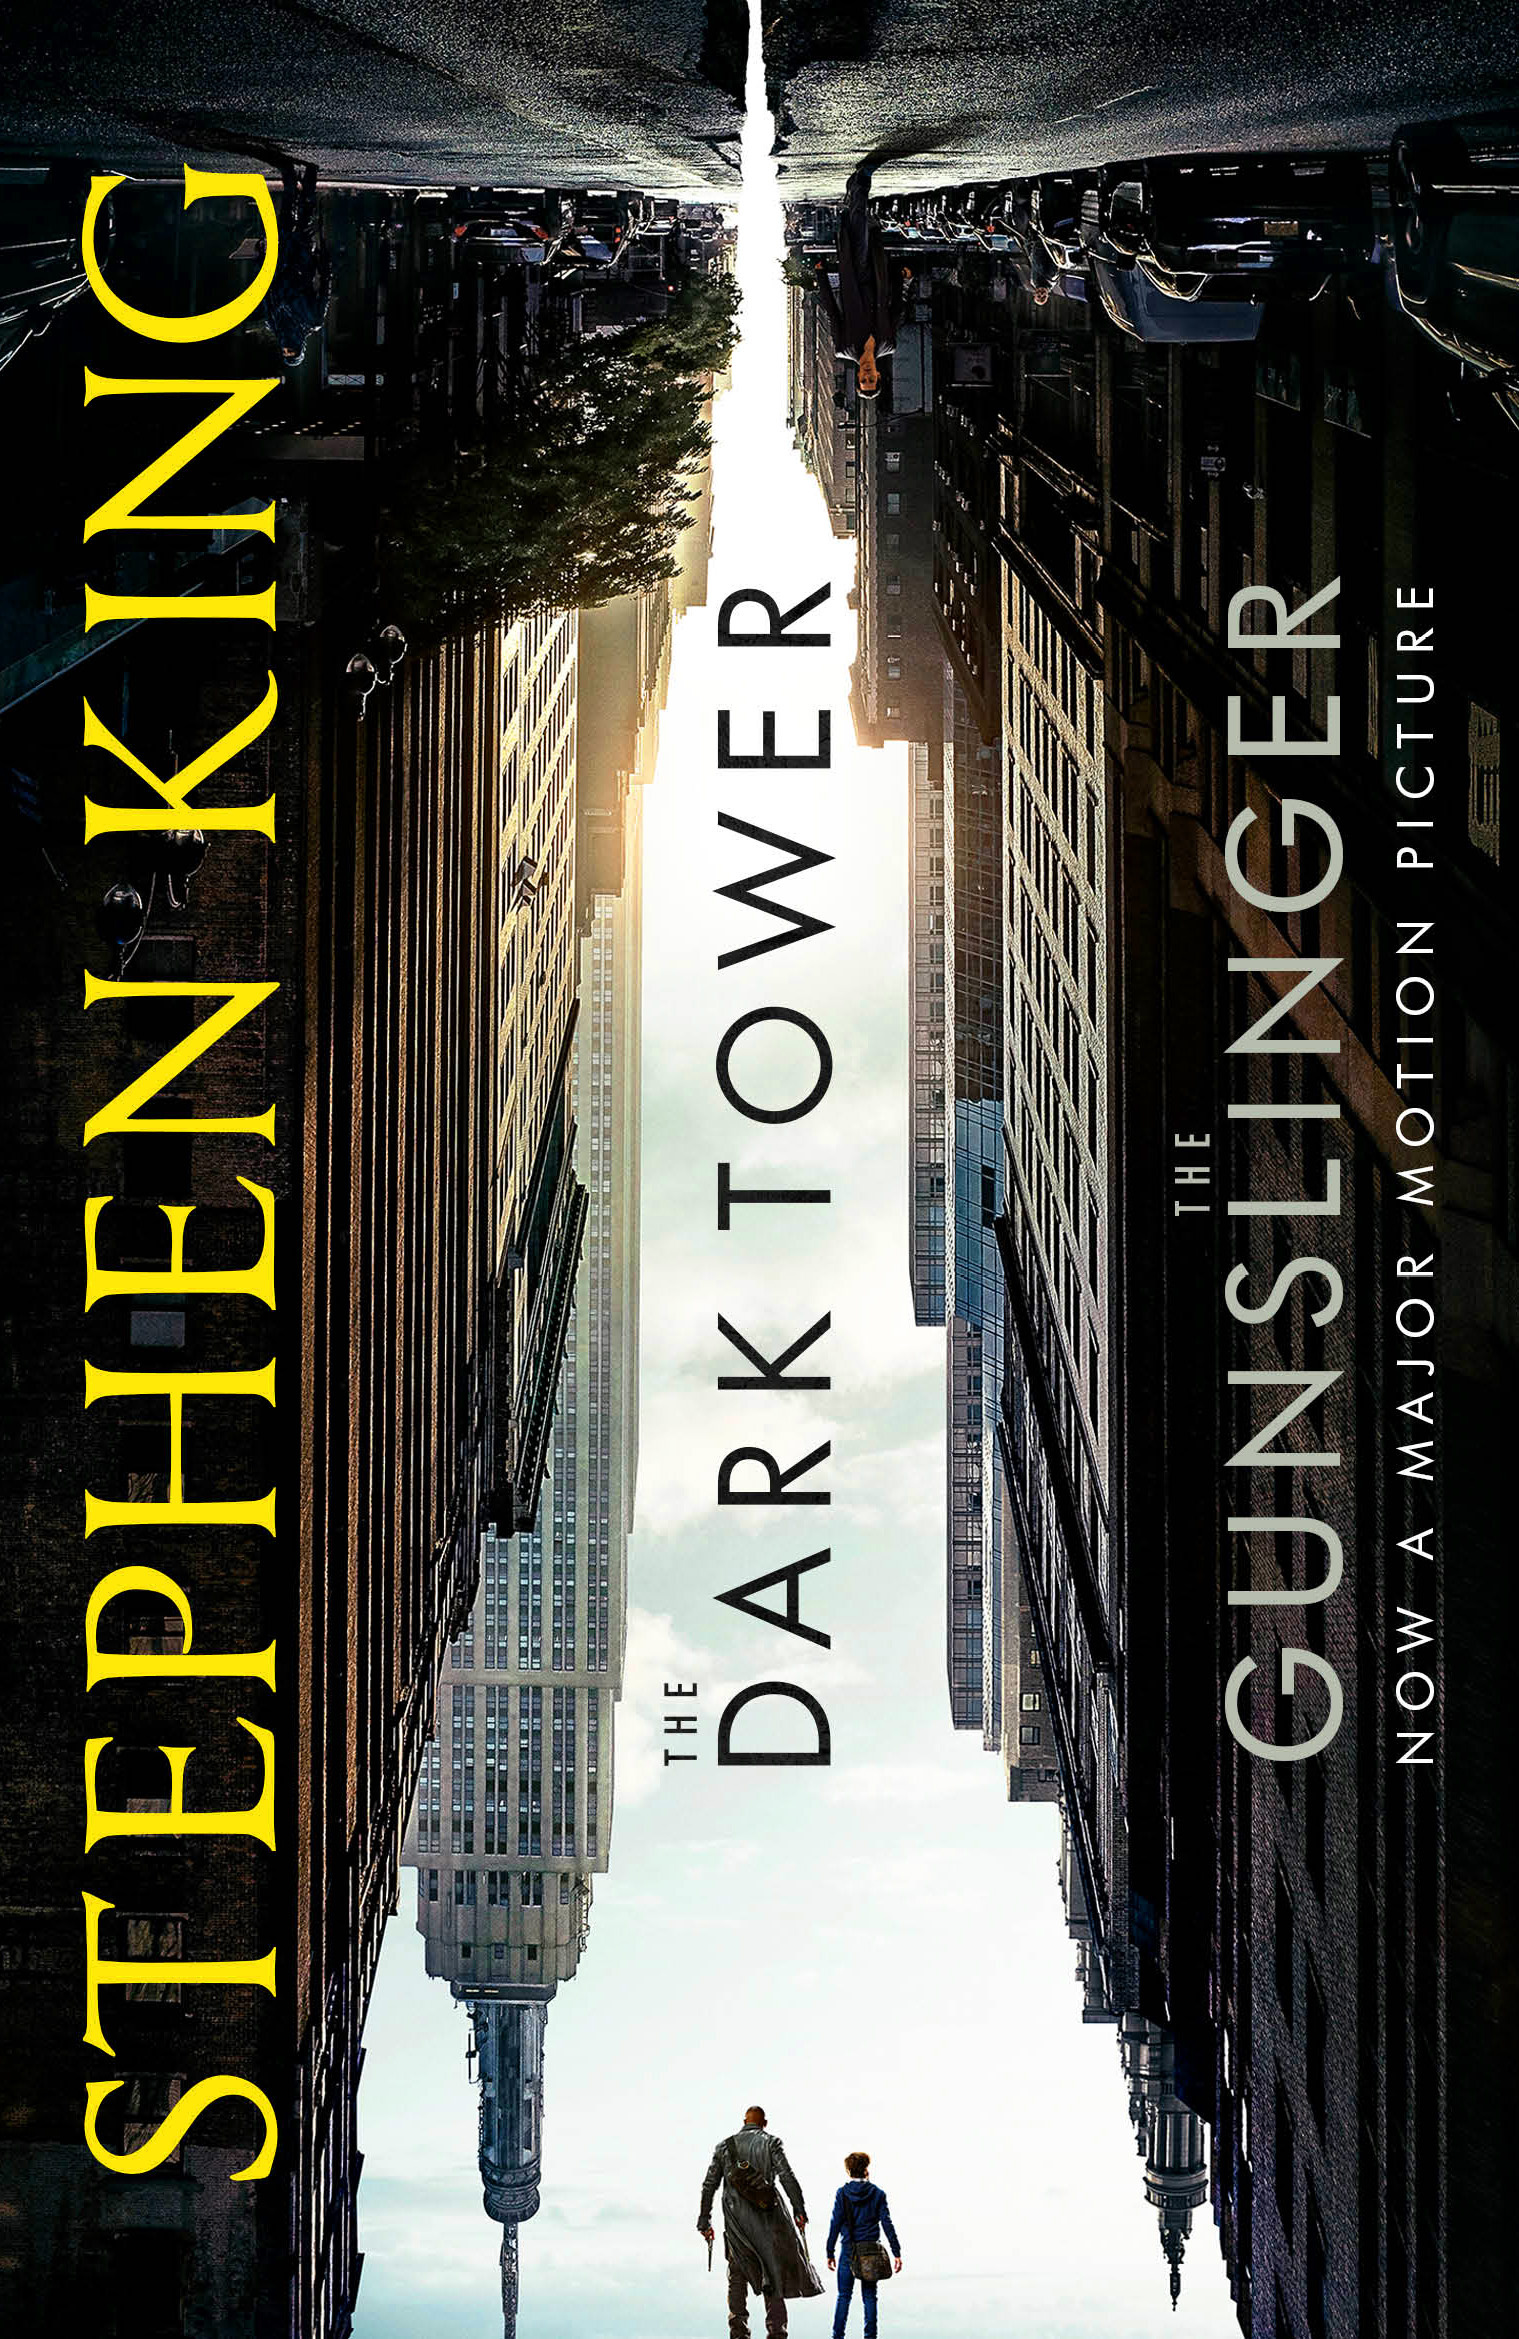 Dark Tower I Gunslinger Film Tie-In by Stephen King, ISBN: 9781473655546